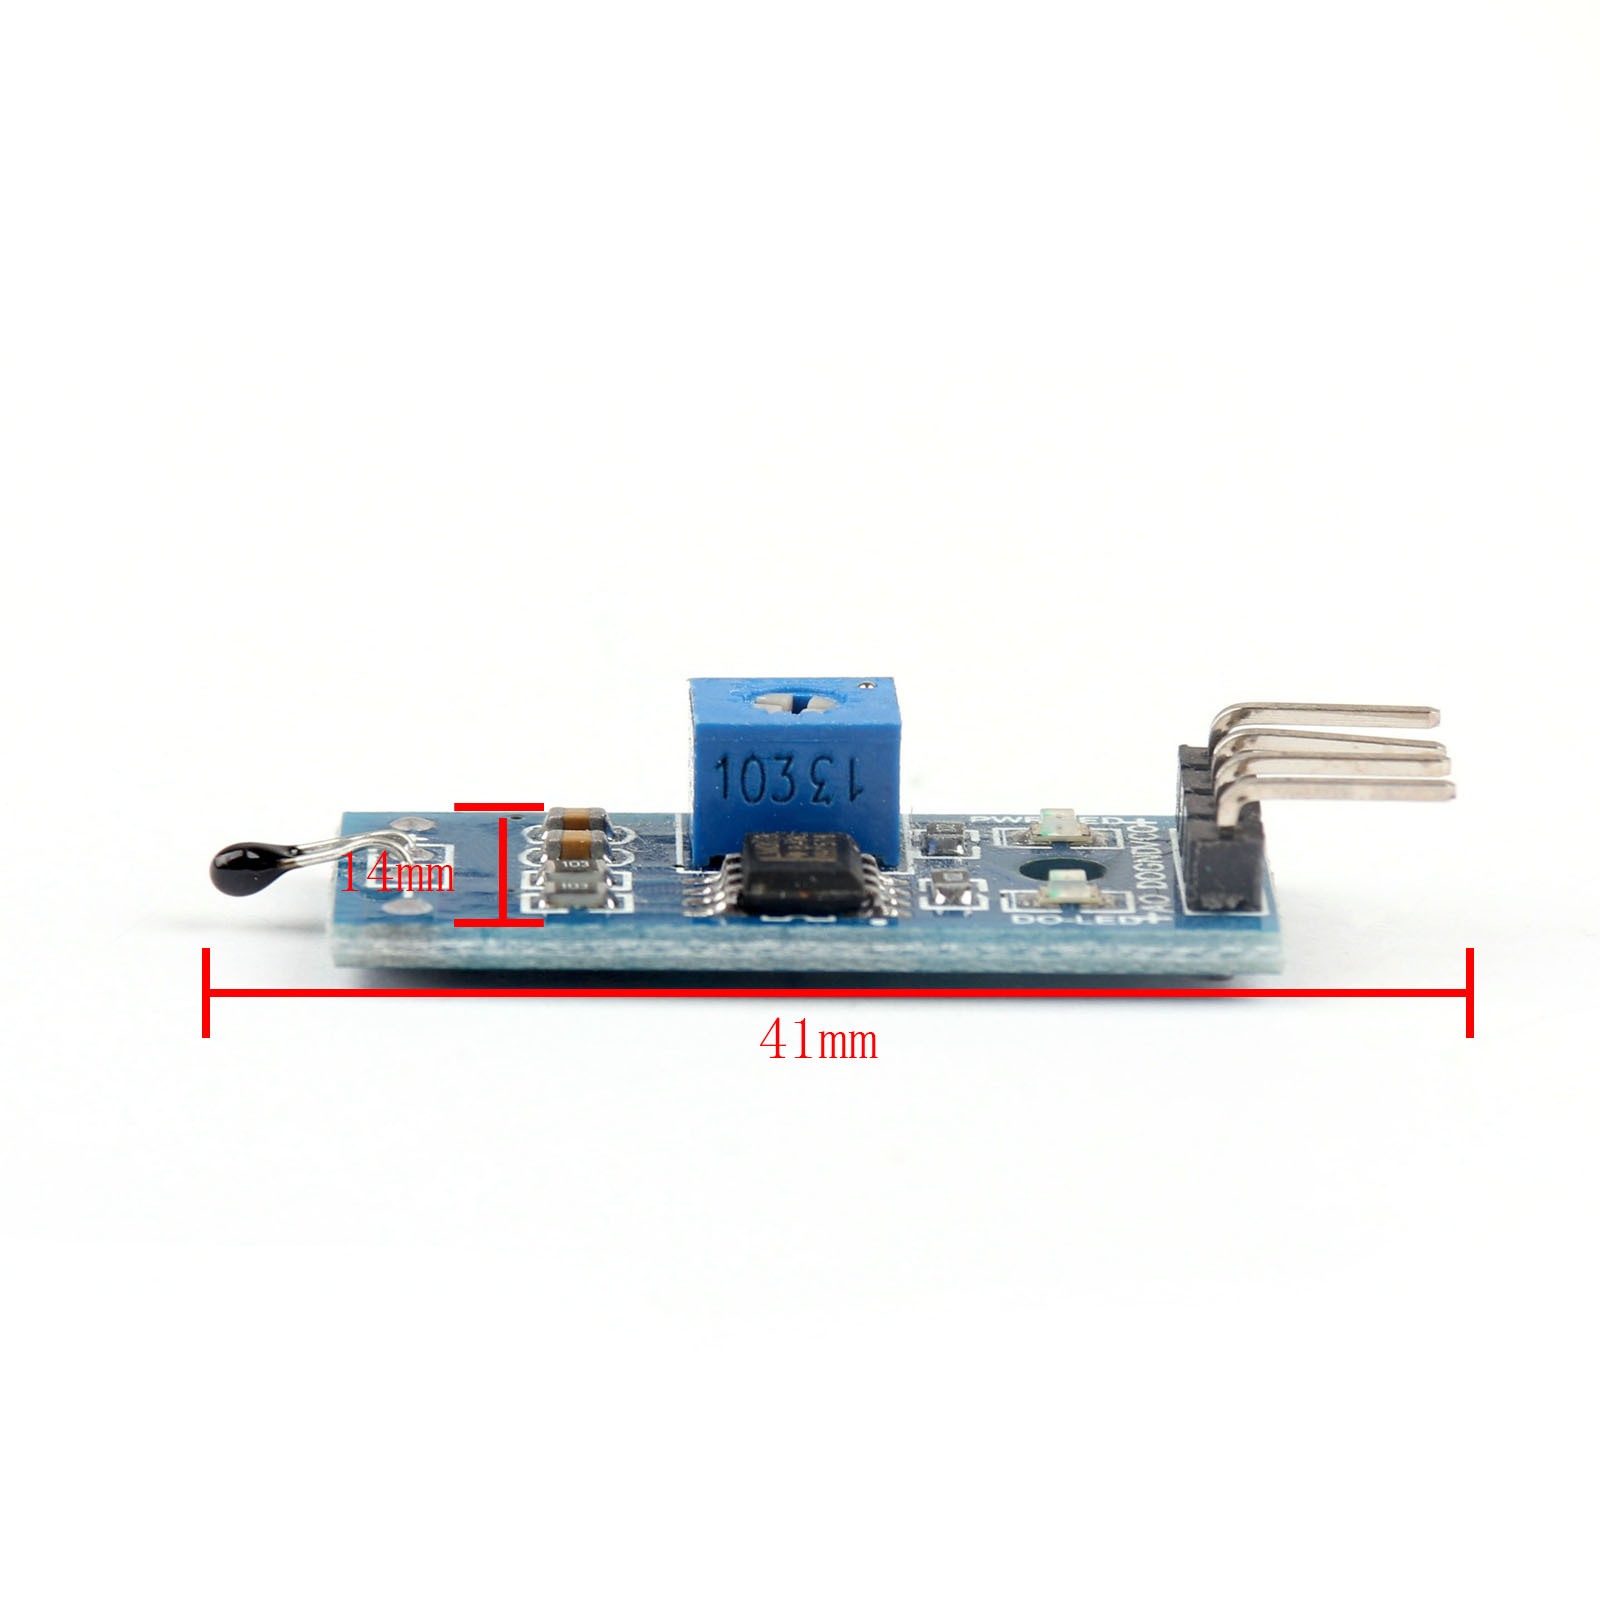 Dc 3 5v Lm393 Chip Thermistor Sensor Module Resistance For Mcu Robot Circuit Battery Charger Picture Of Good Electronic Product Name Thermal Pin Number 4 Working Voltage Main Temperature Probe